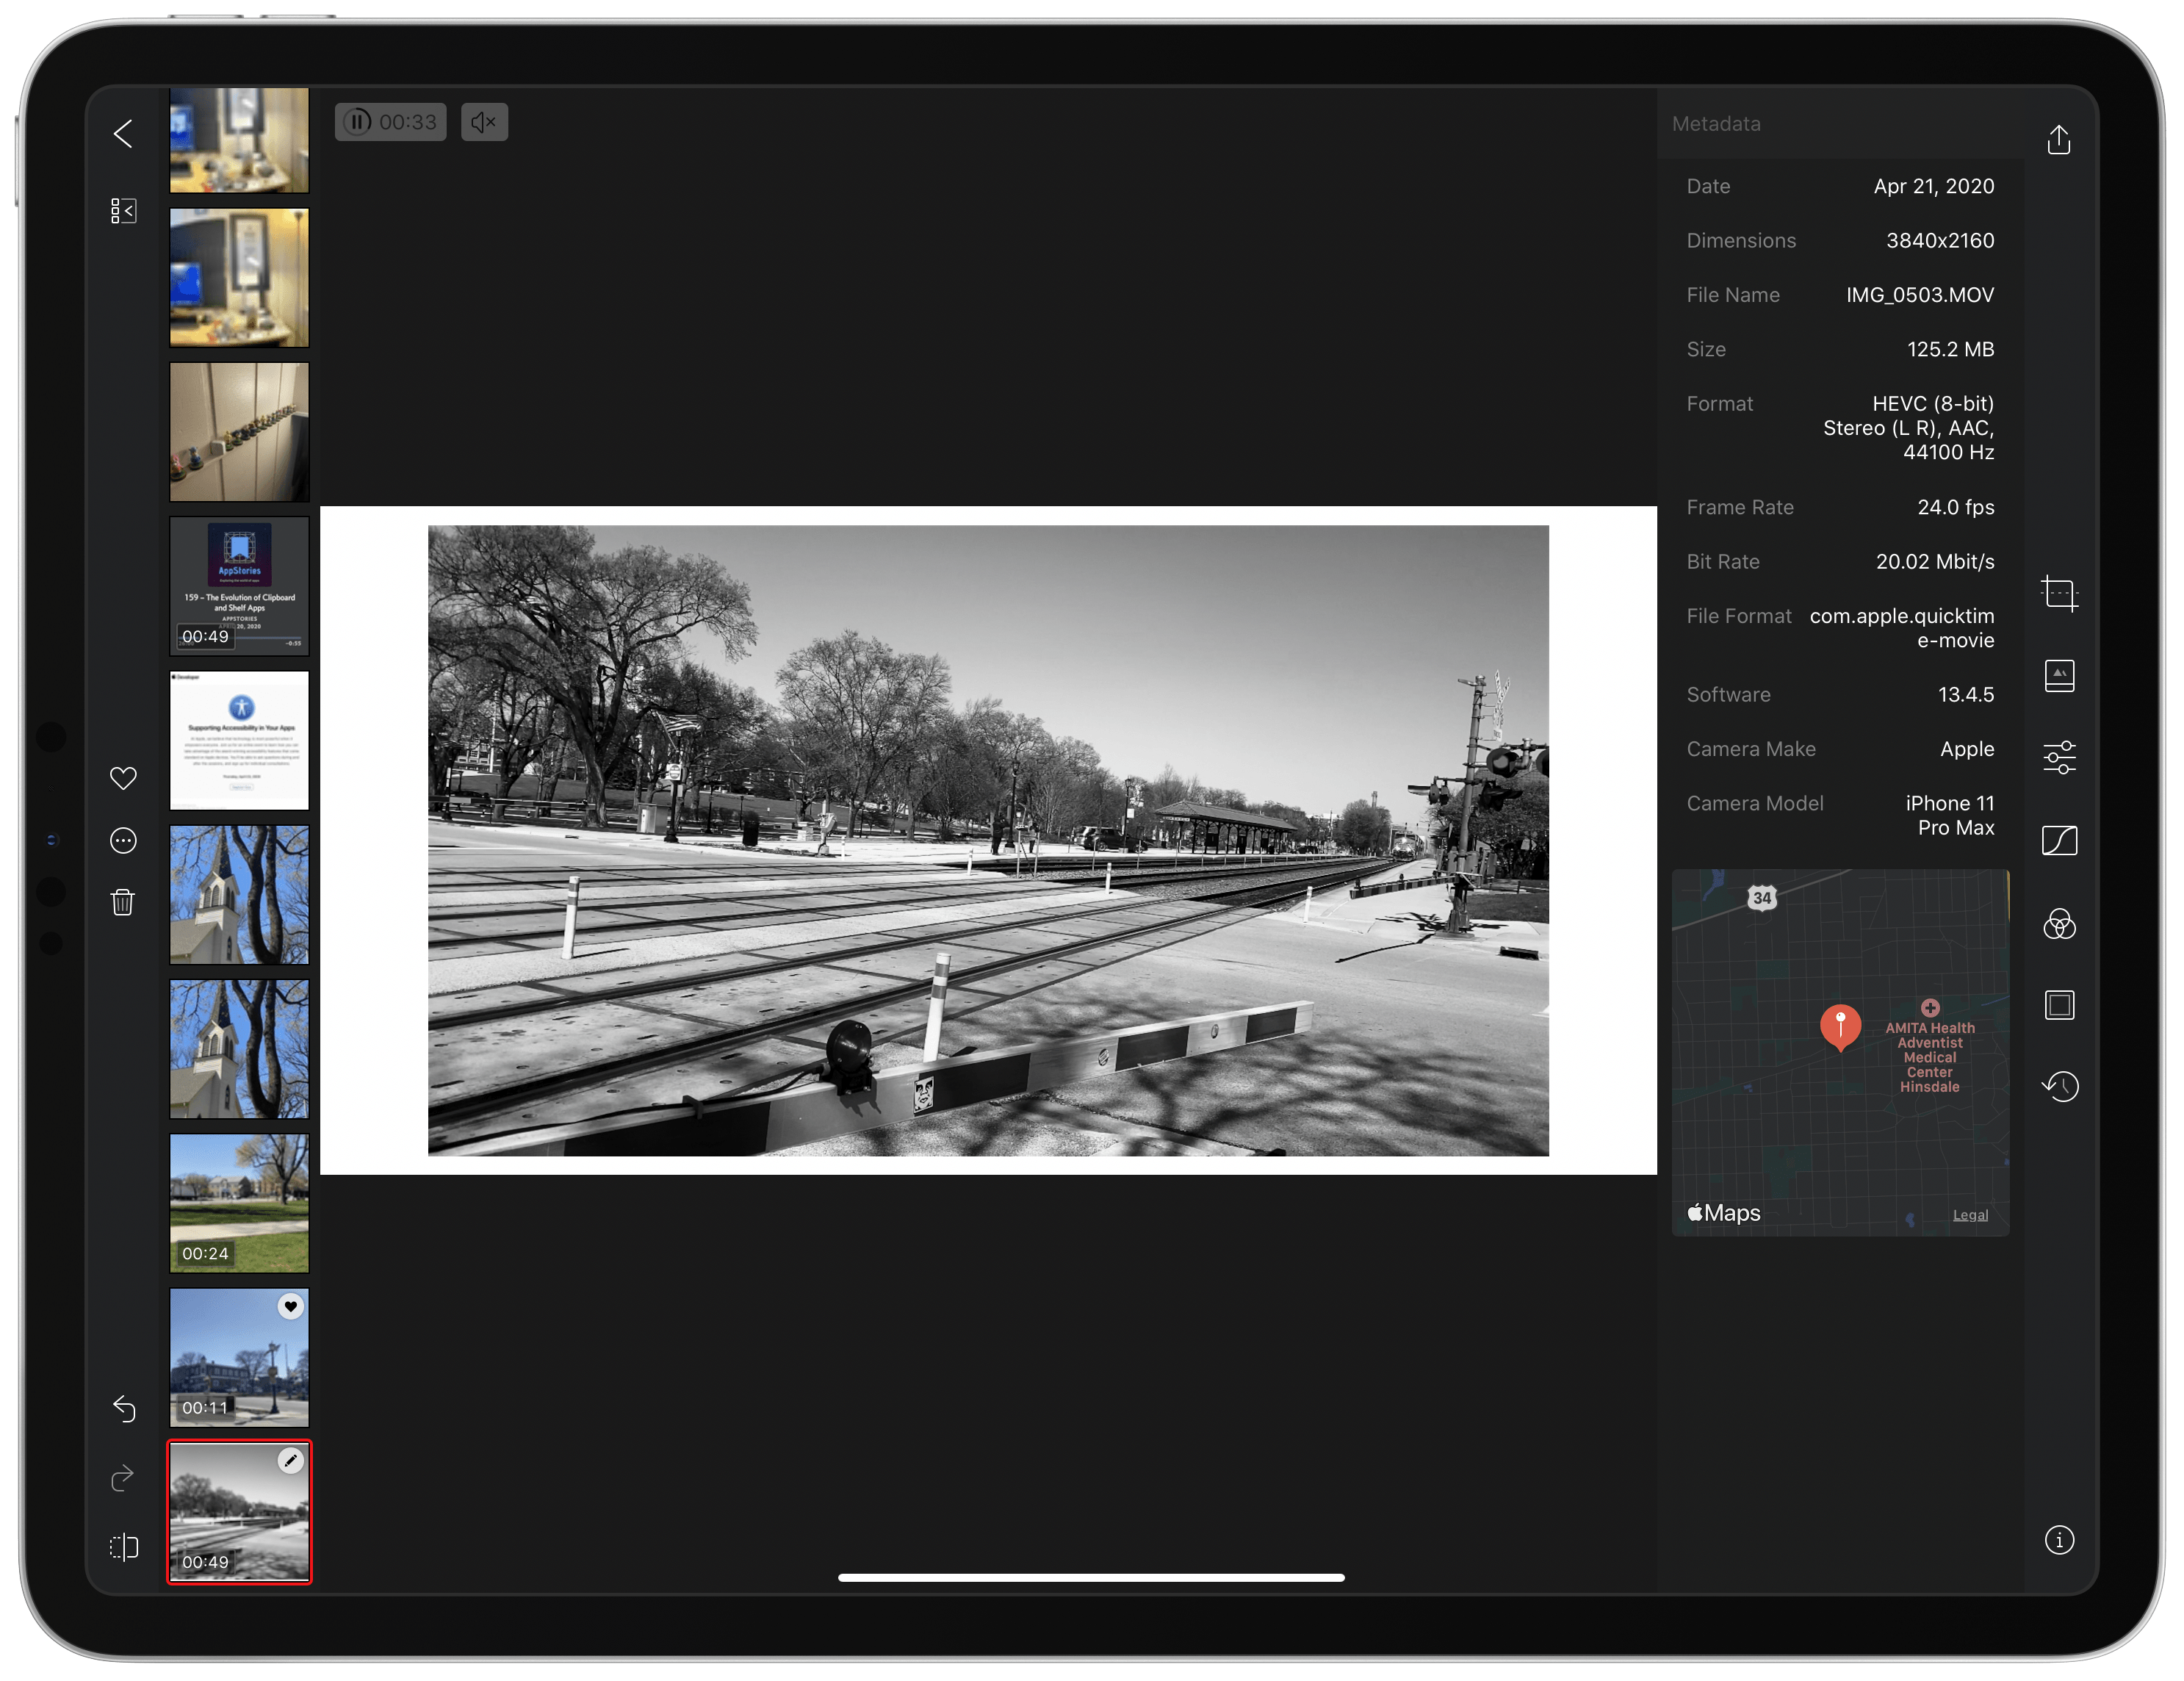 All of Darkroom's editing tools and filters available for photos are available for videos too.